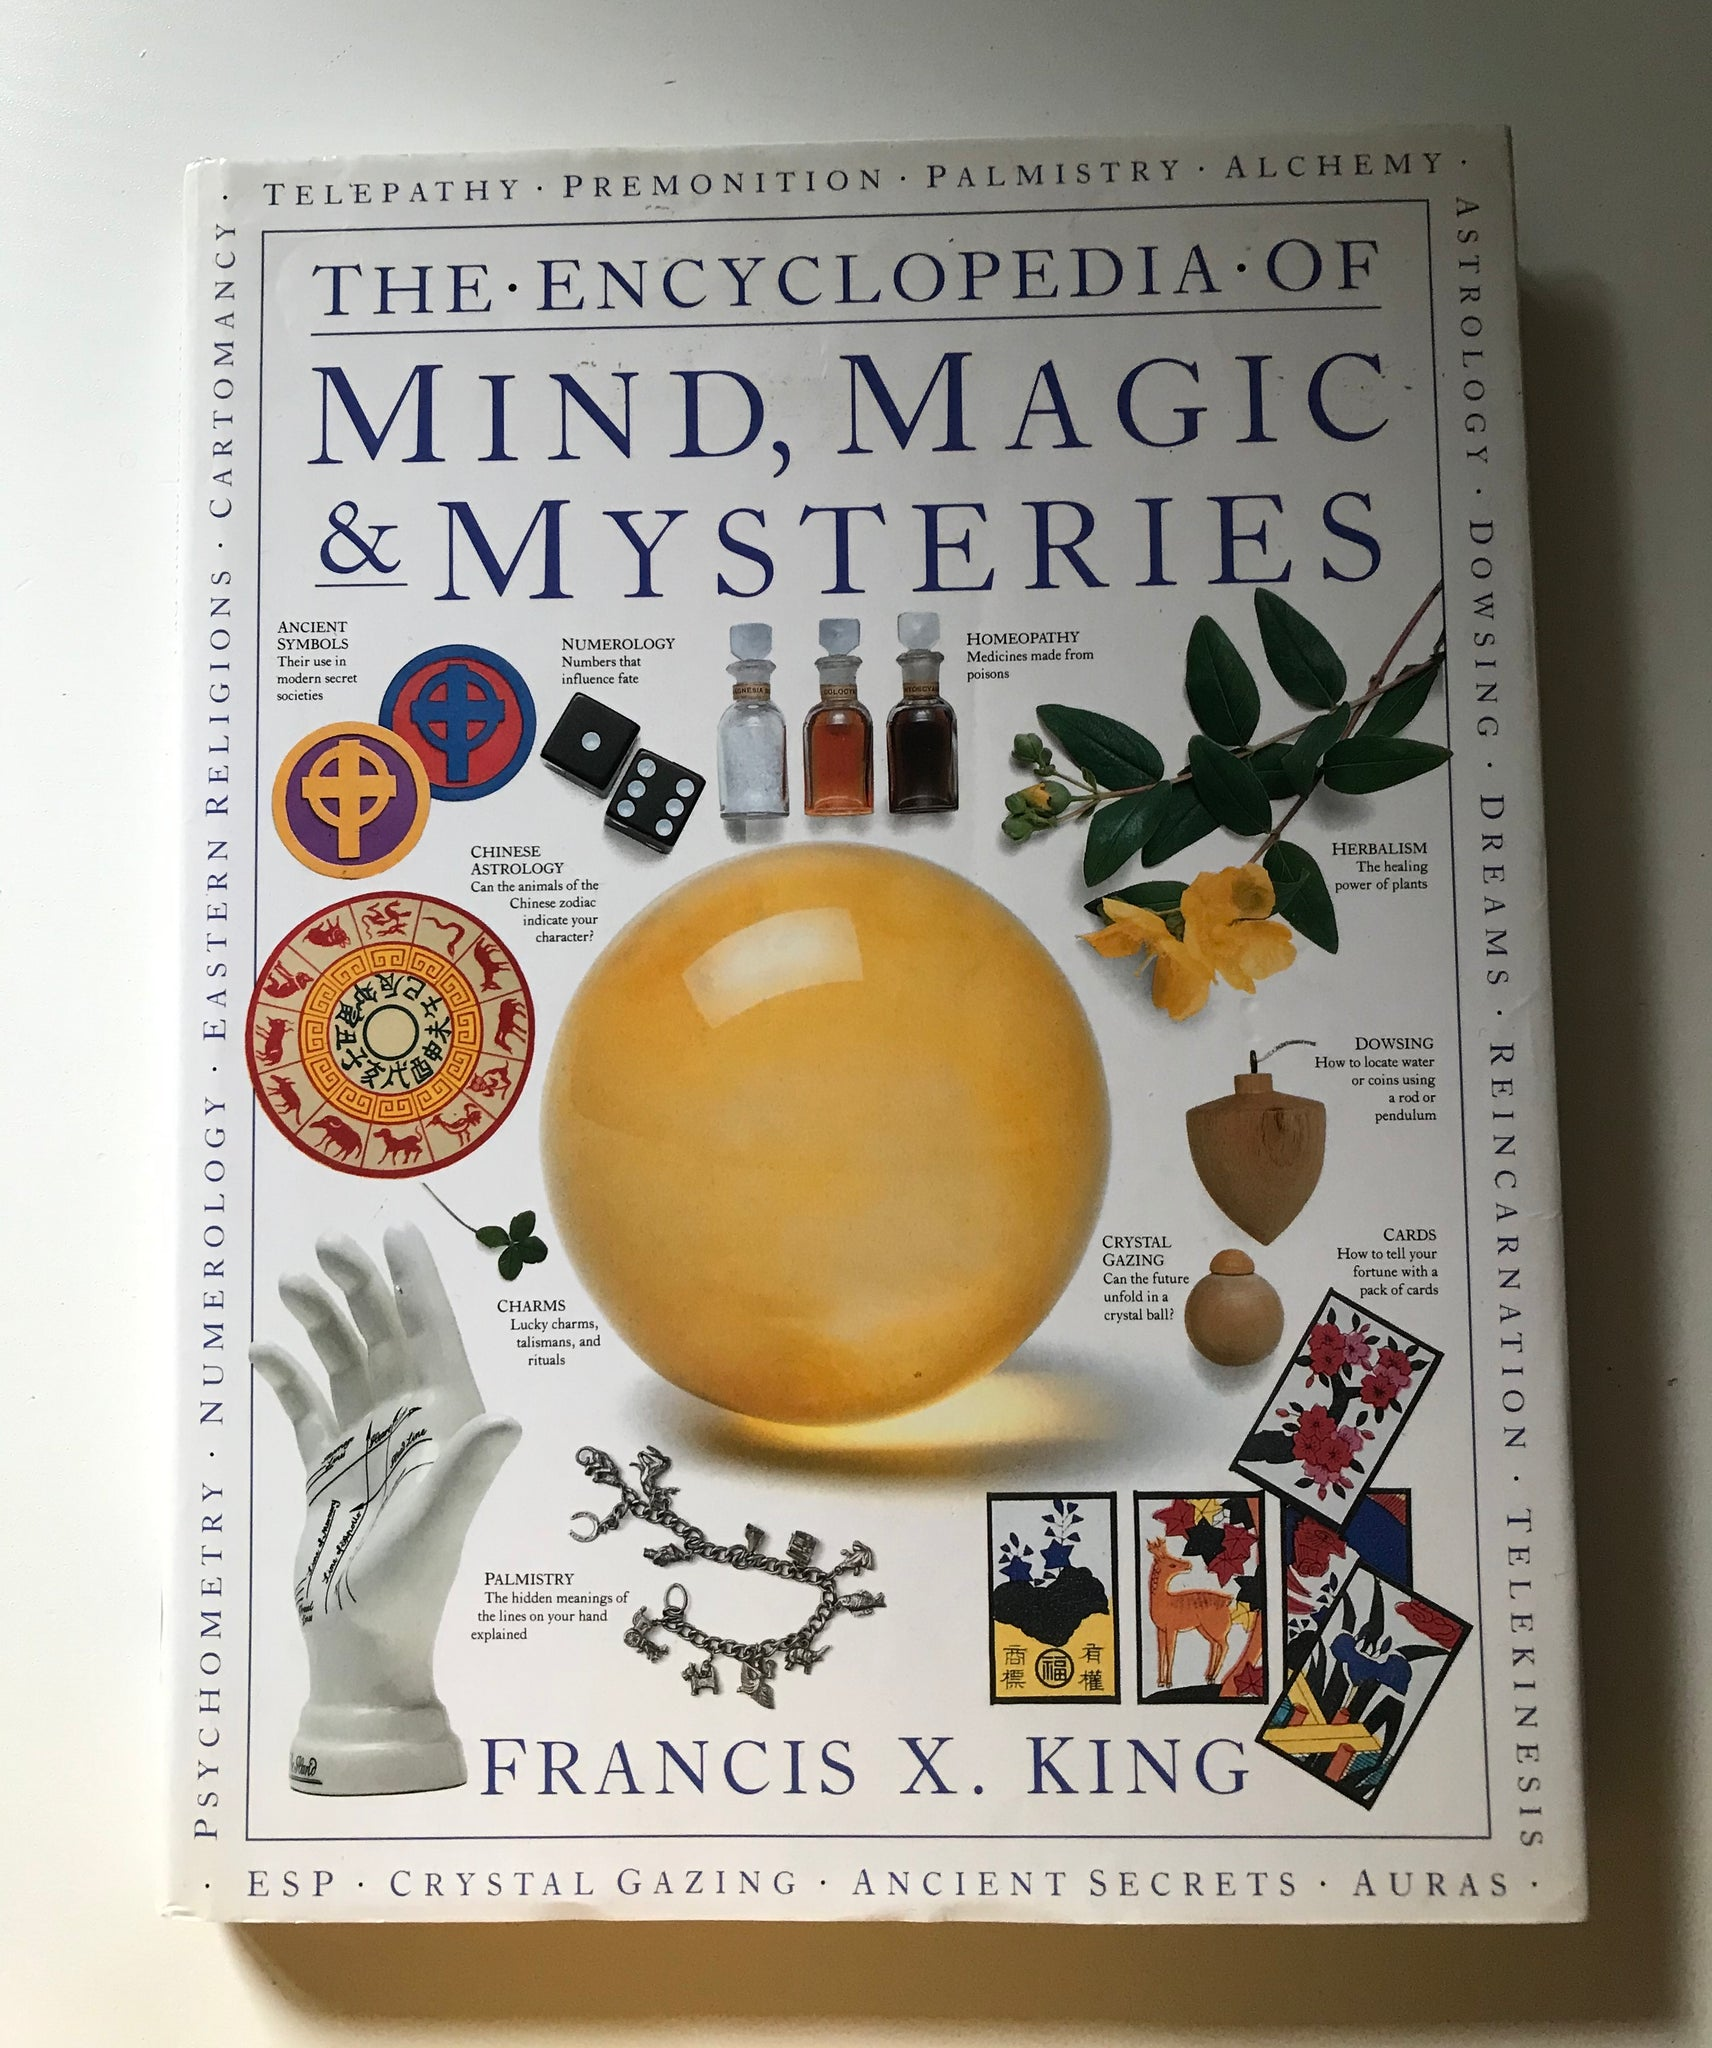 Francis X. King - The Encyclopedia of mind, magic & mysteries